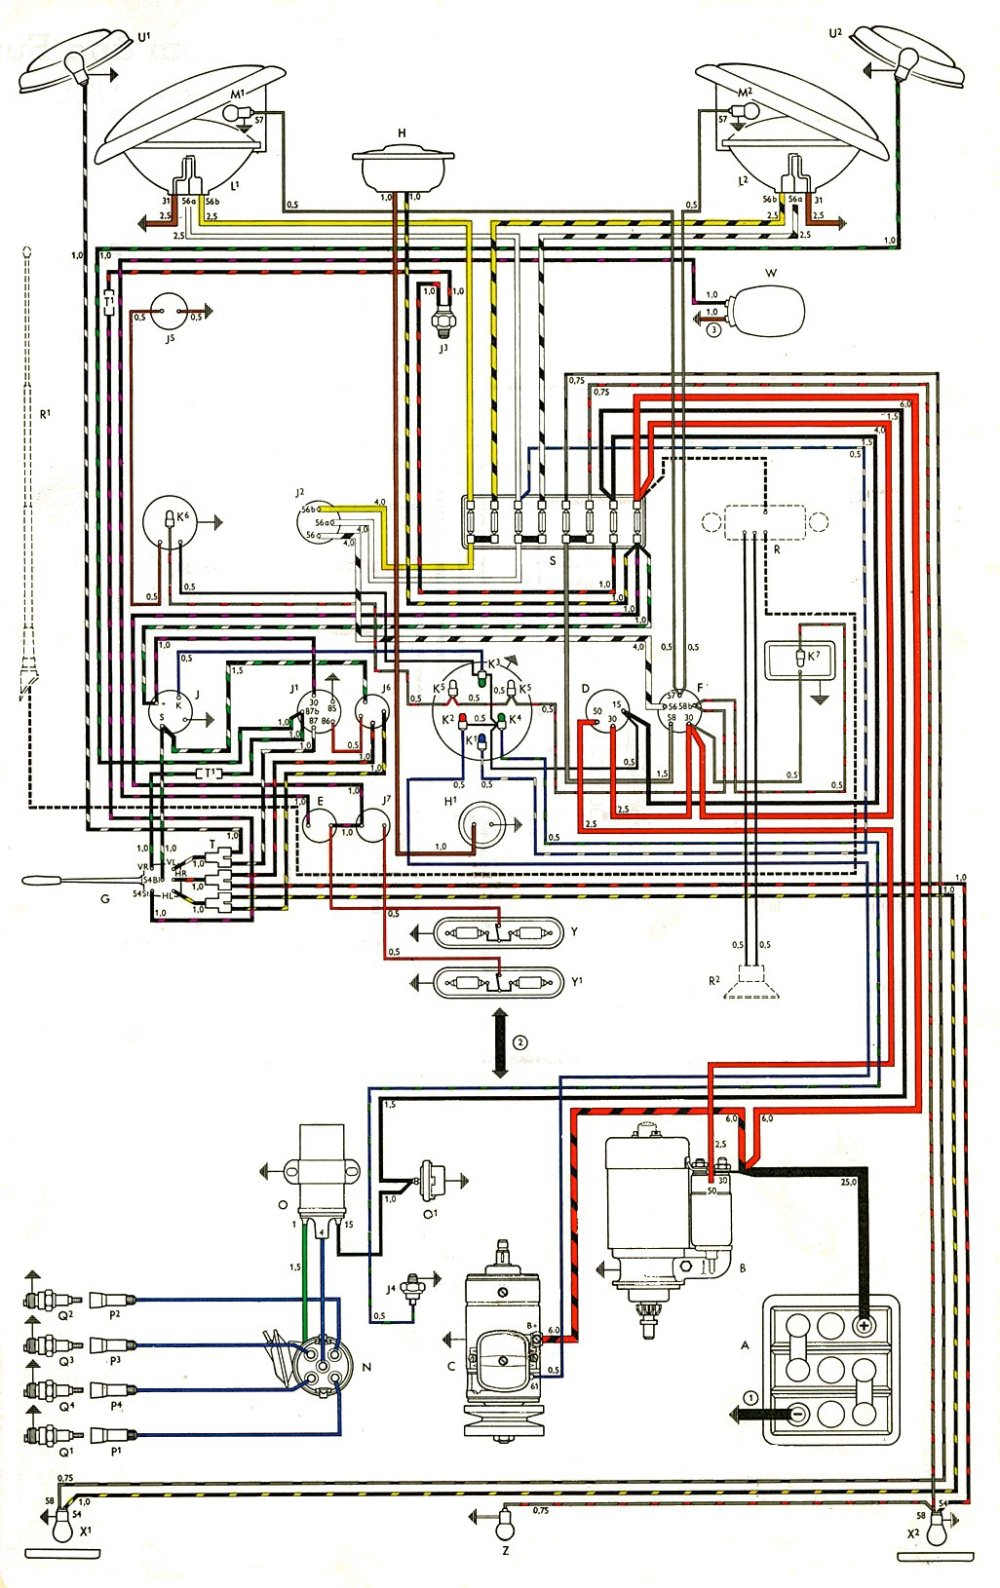 medium resolution of thesamba com type 2 wiring diagrams 1976 vw bus wiring schematic